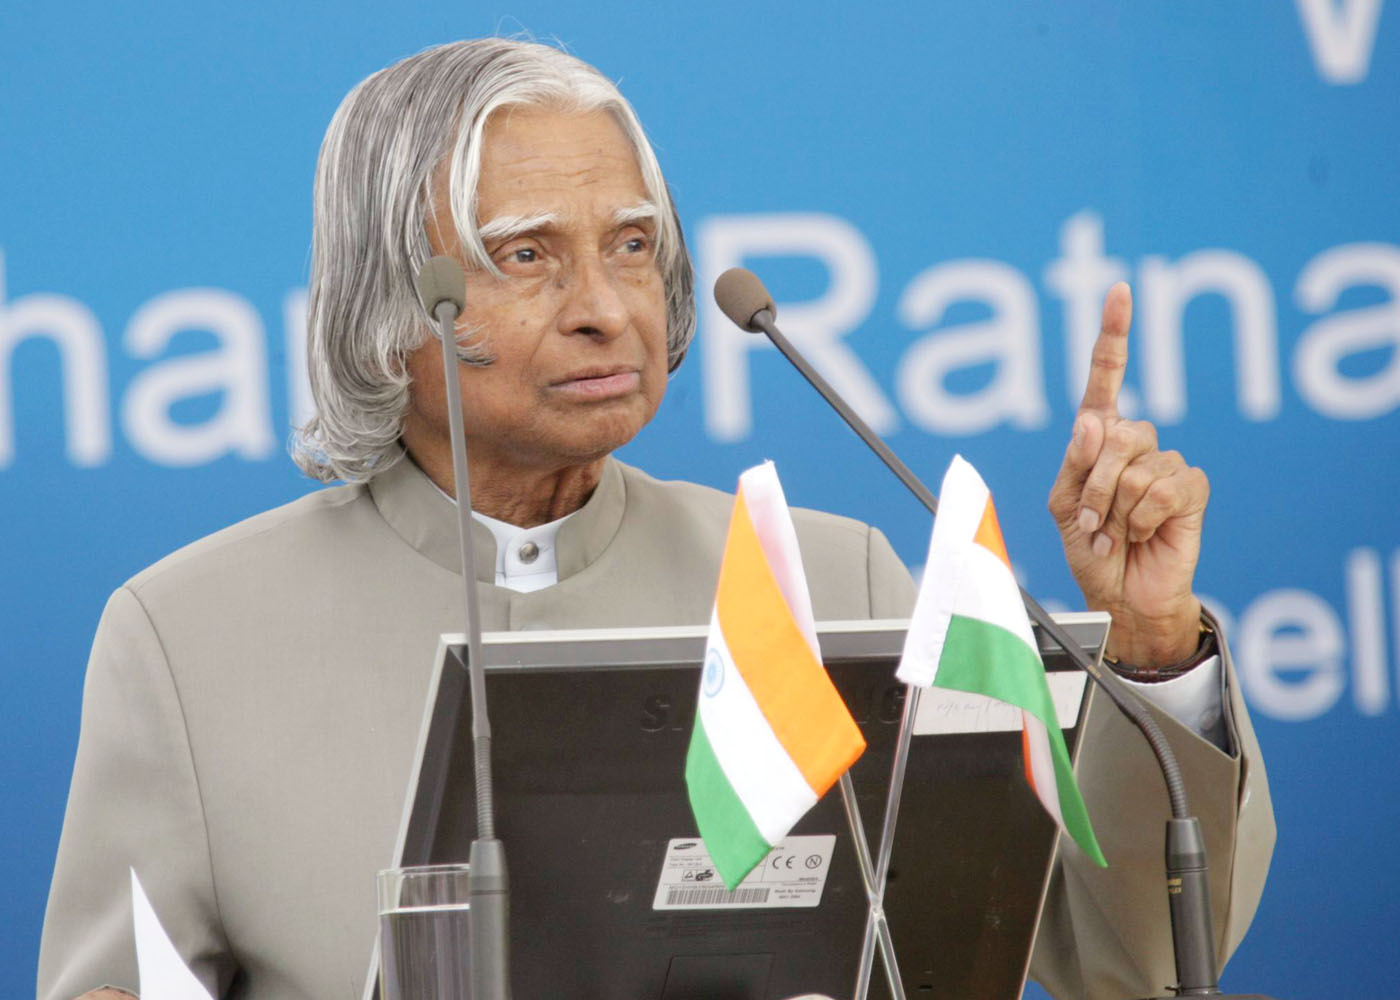 Former Indian President Dr. APJ Abdul Kalam Passes Away After Collapsing On-Stage In IIM-Shillong